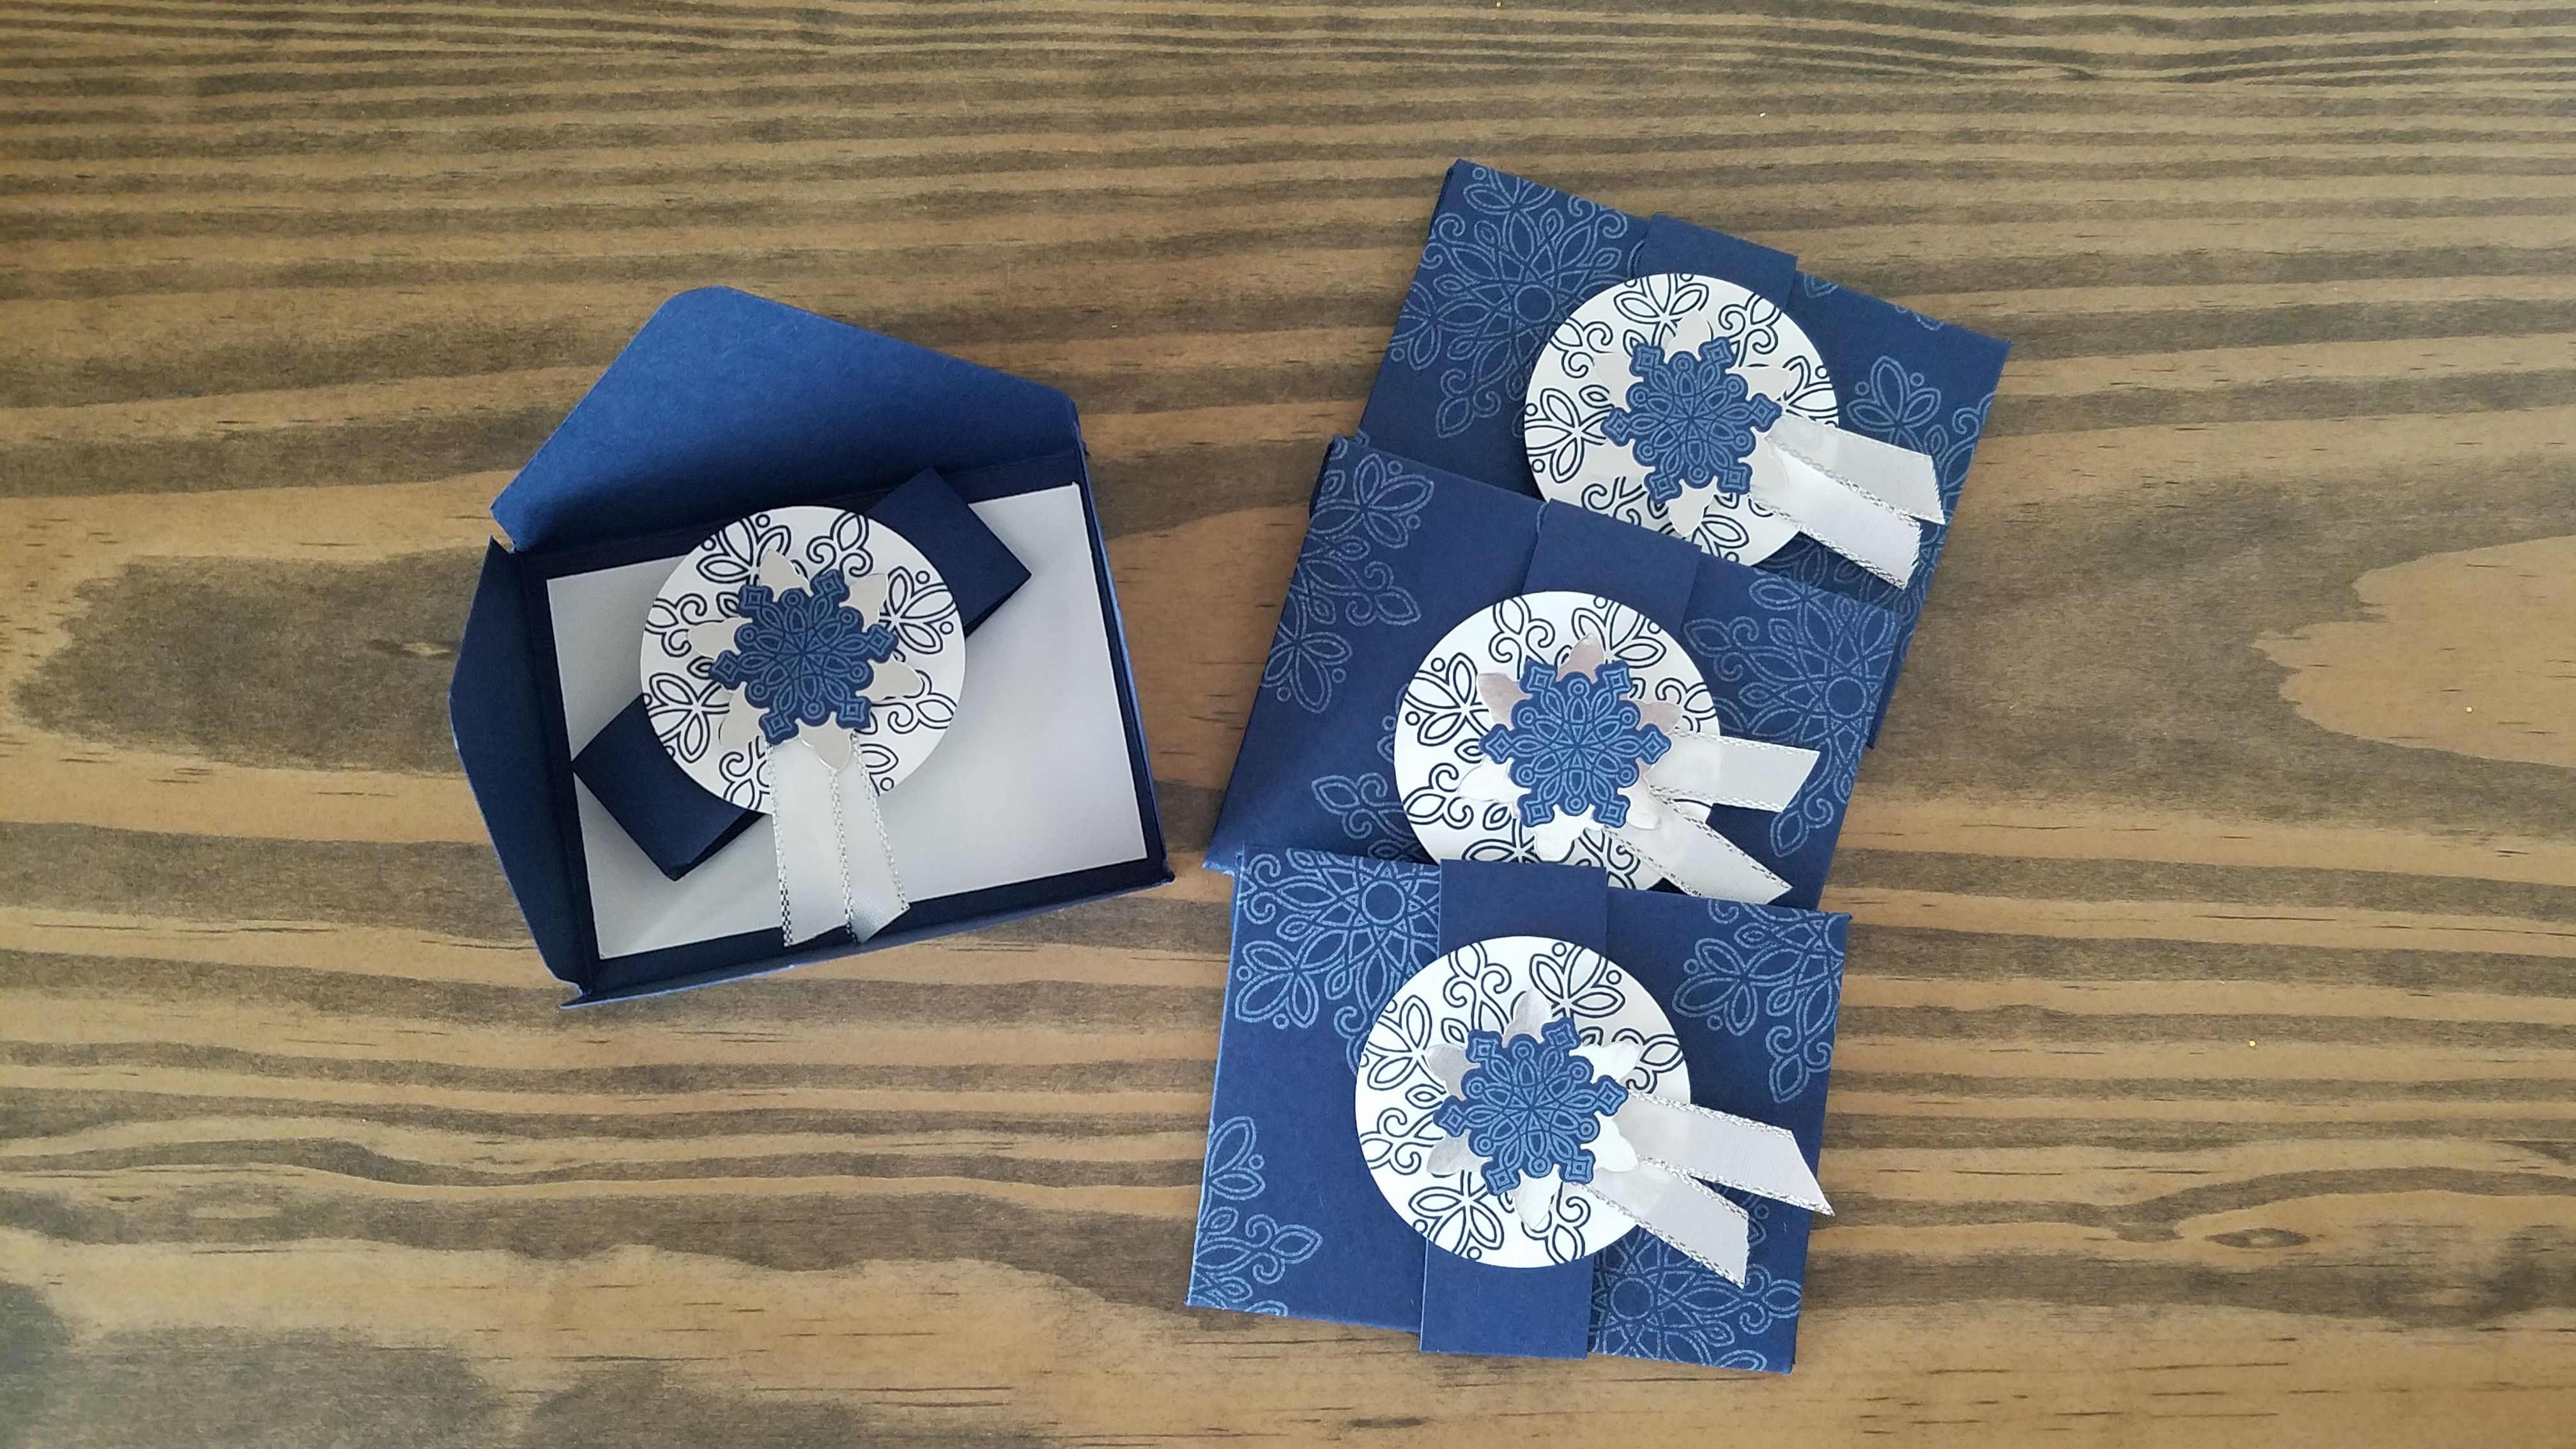 stamp your own dsp and make gift card holders using the envelope